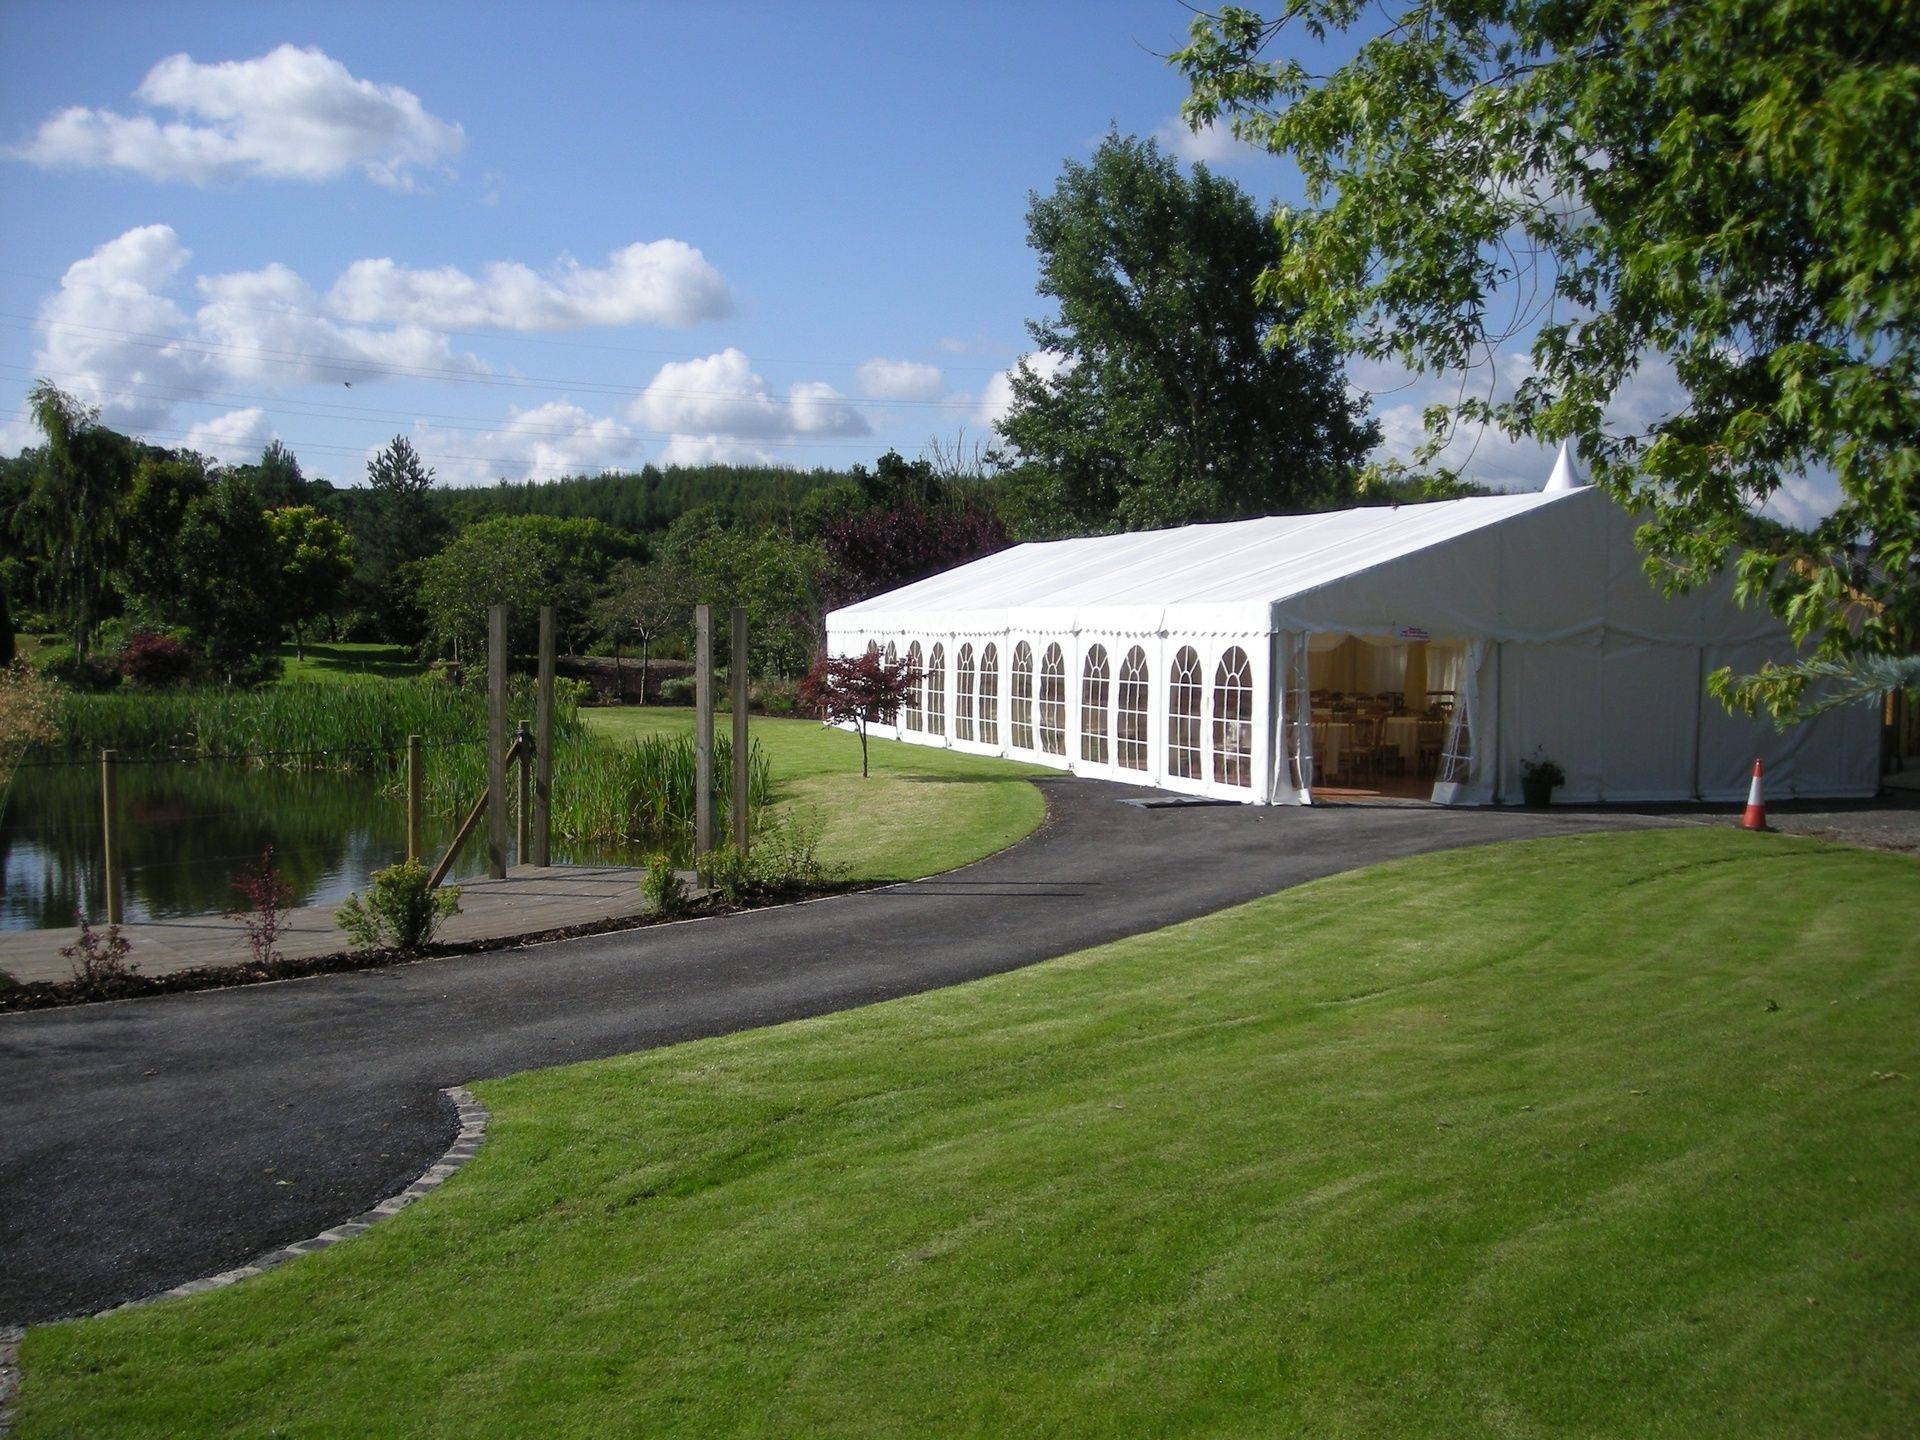 Long Marquee tent end of